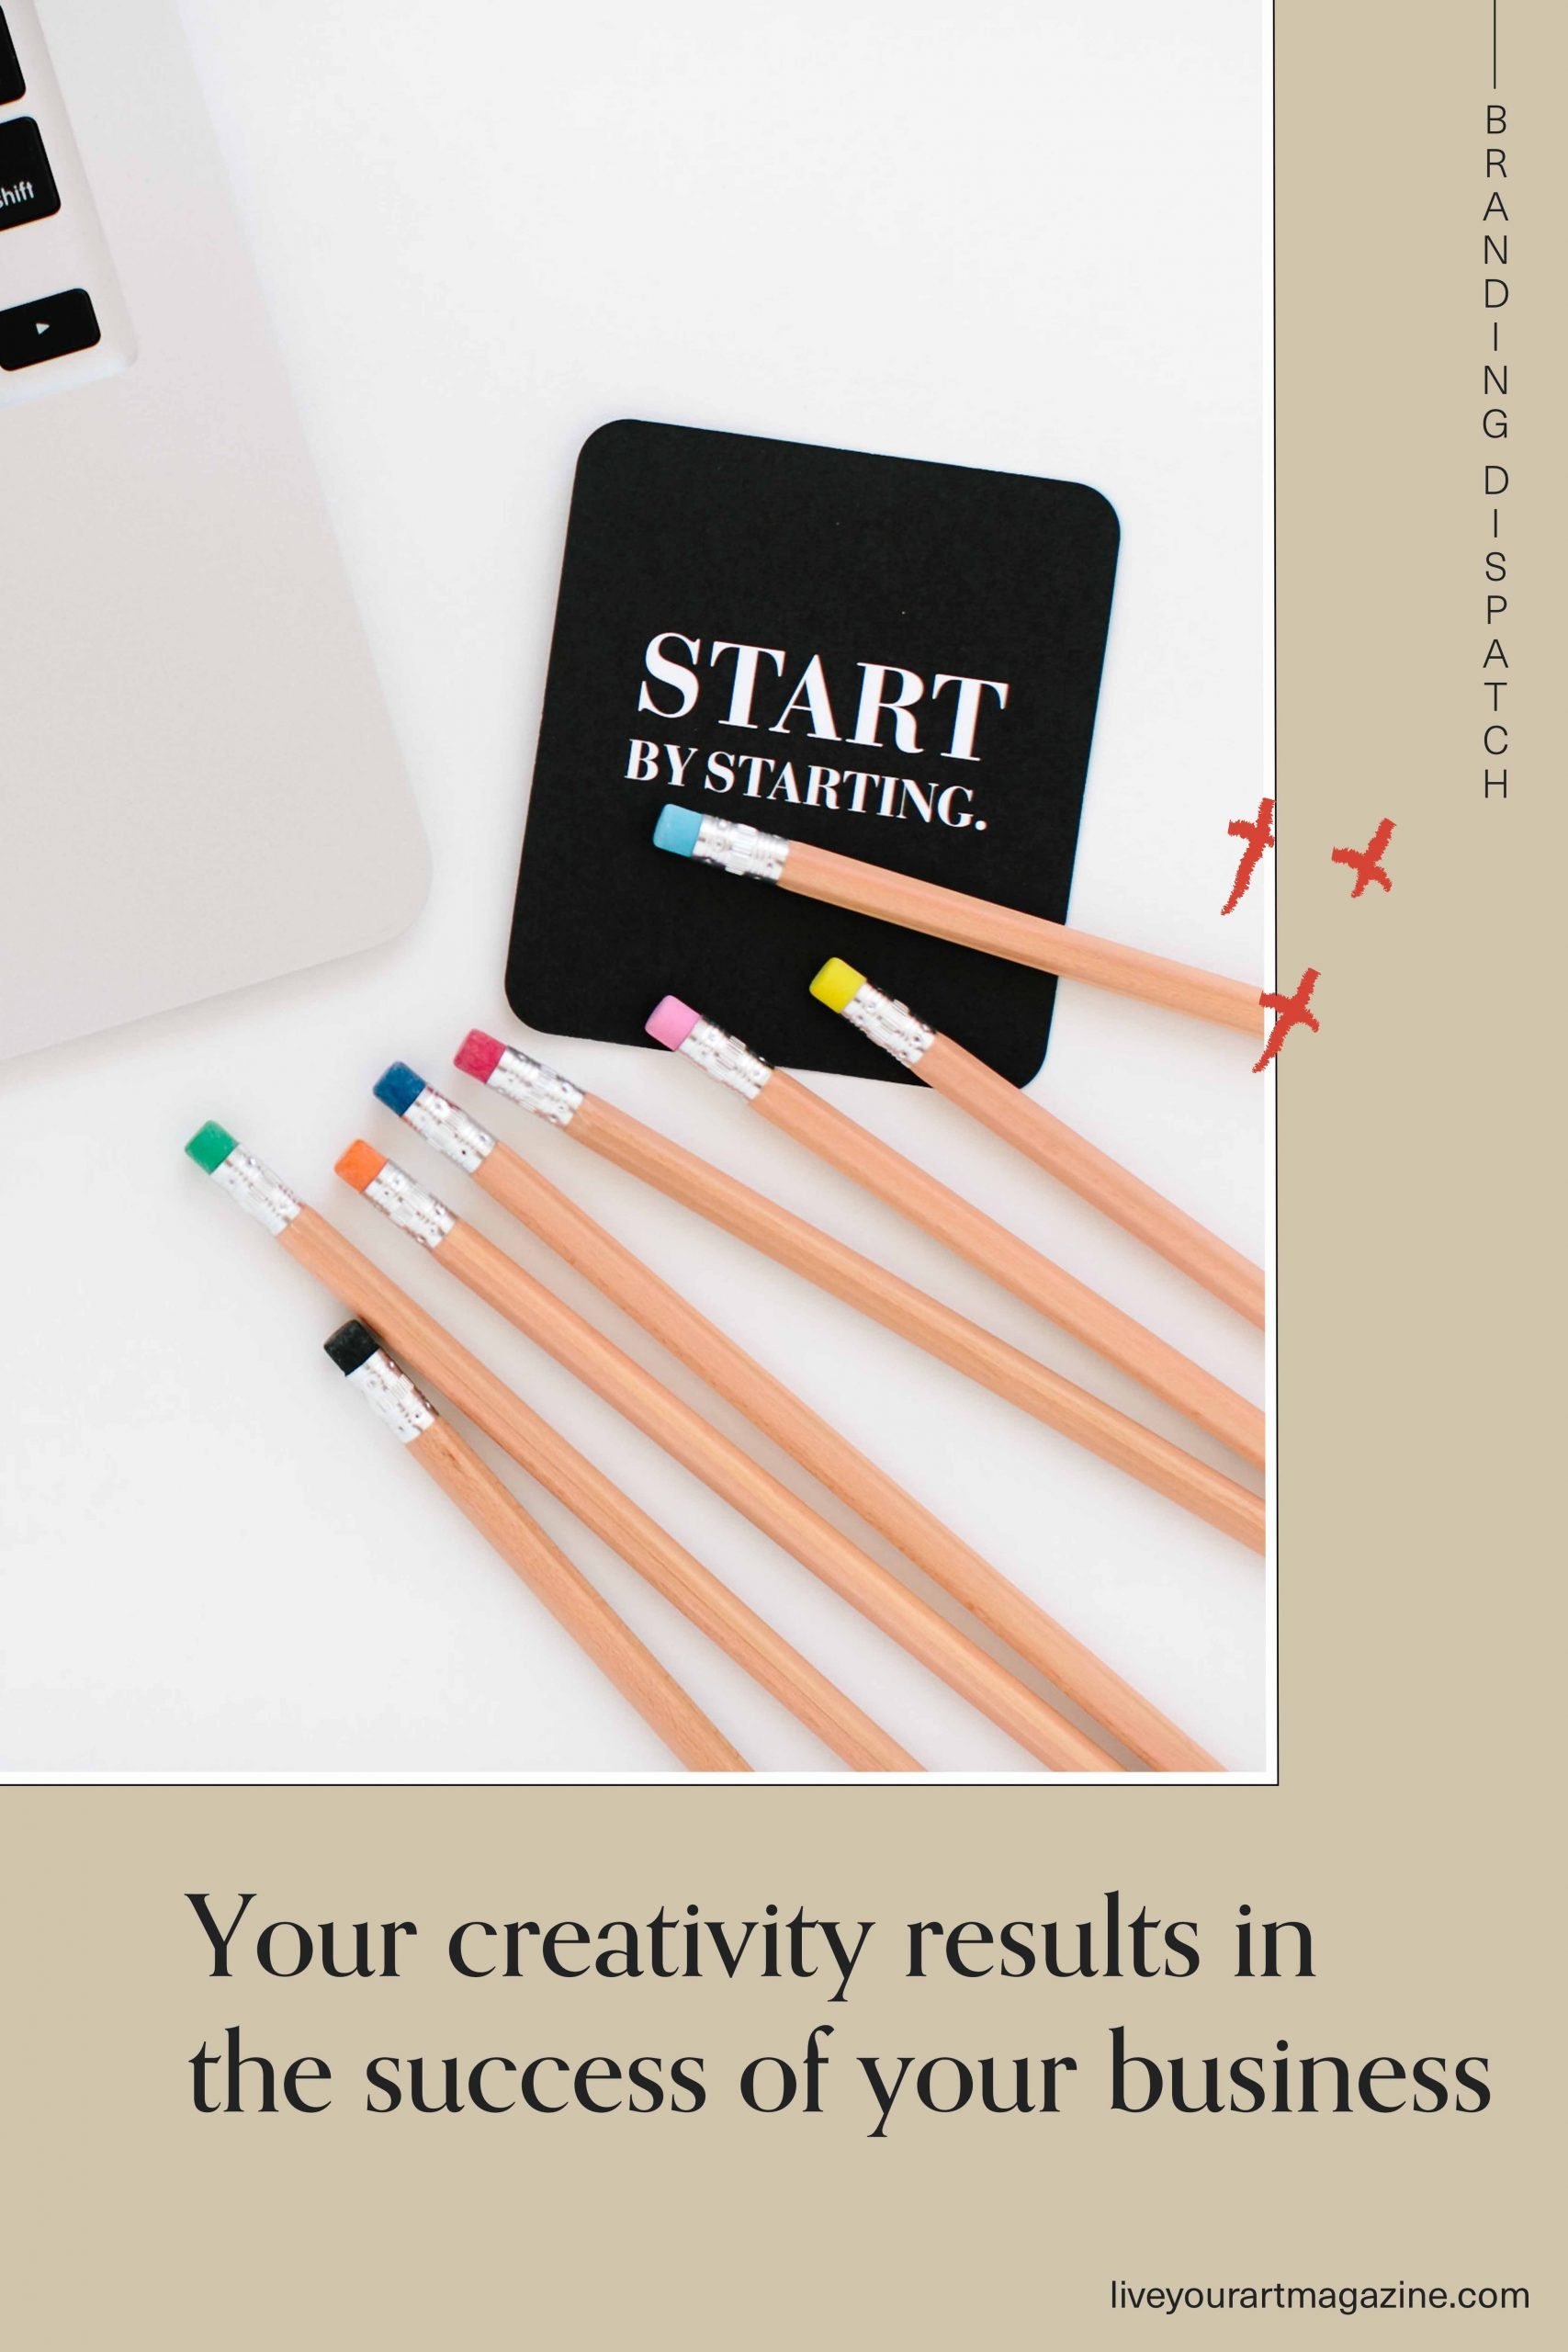 Your creativity results in success of your business